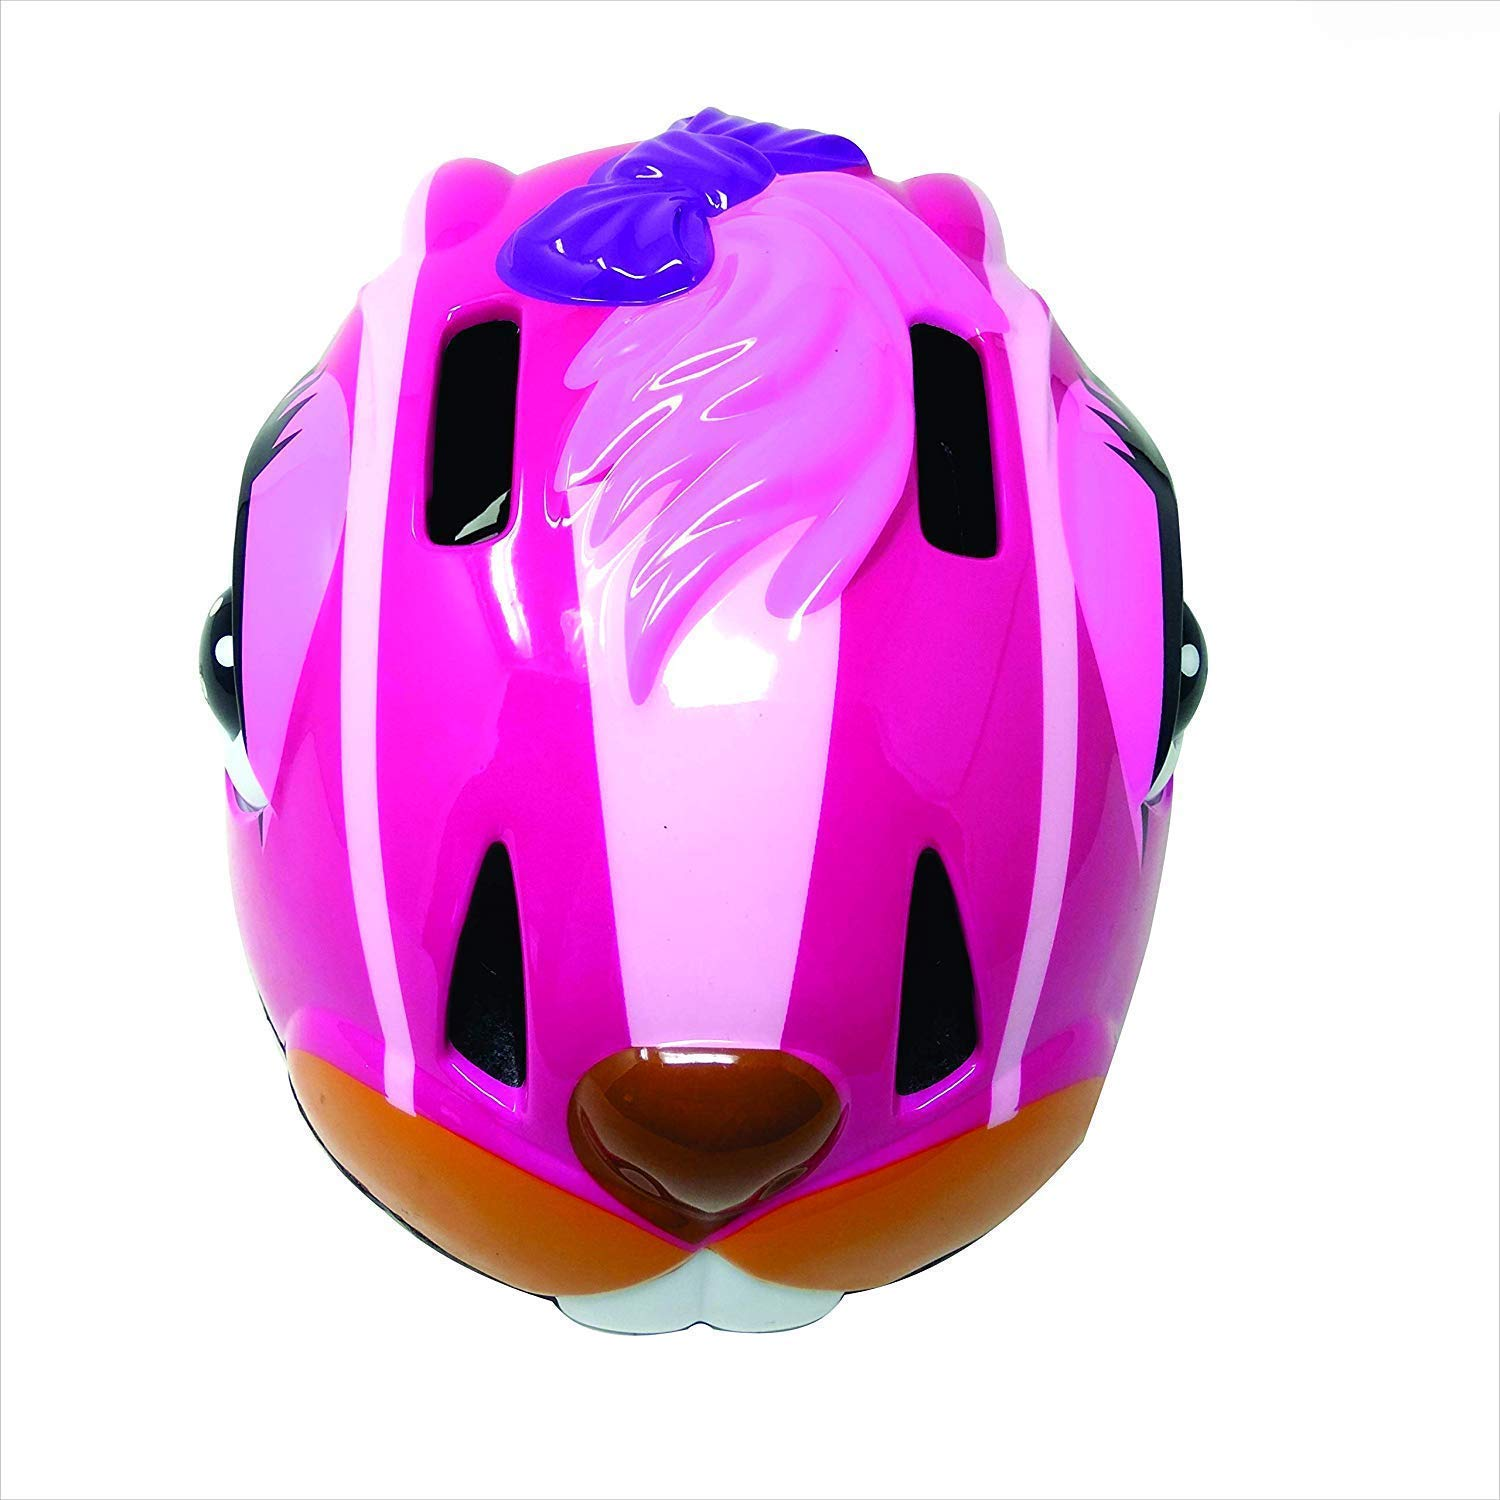 show original title Details about  /7in1 Kids Thicken Bike Helmet Protective Knee Boys Girls Cycling Riding Hel DB